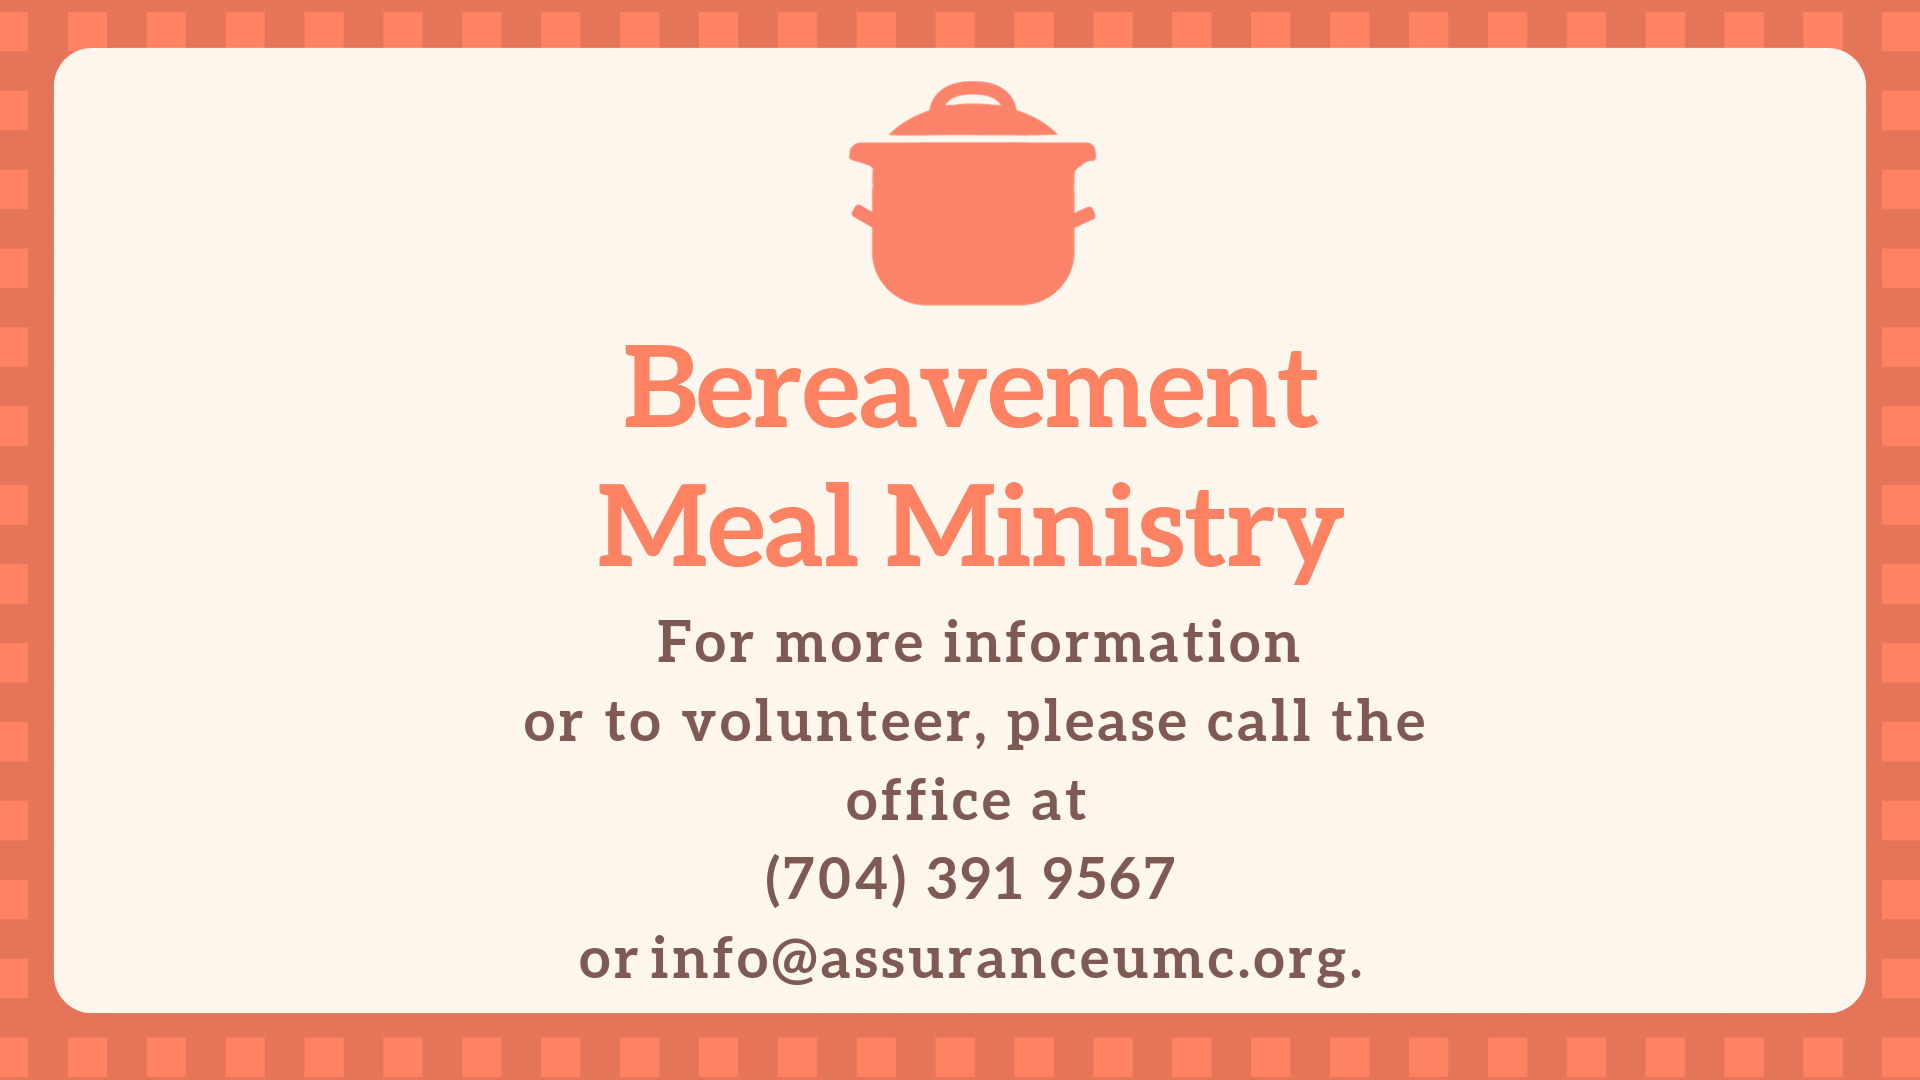 Bereavement Meal Ministry Propresentor.png